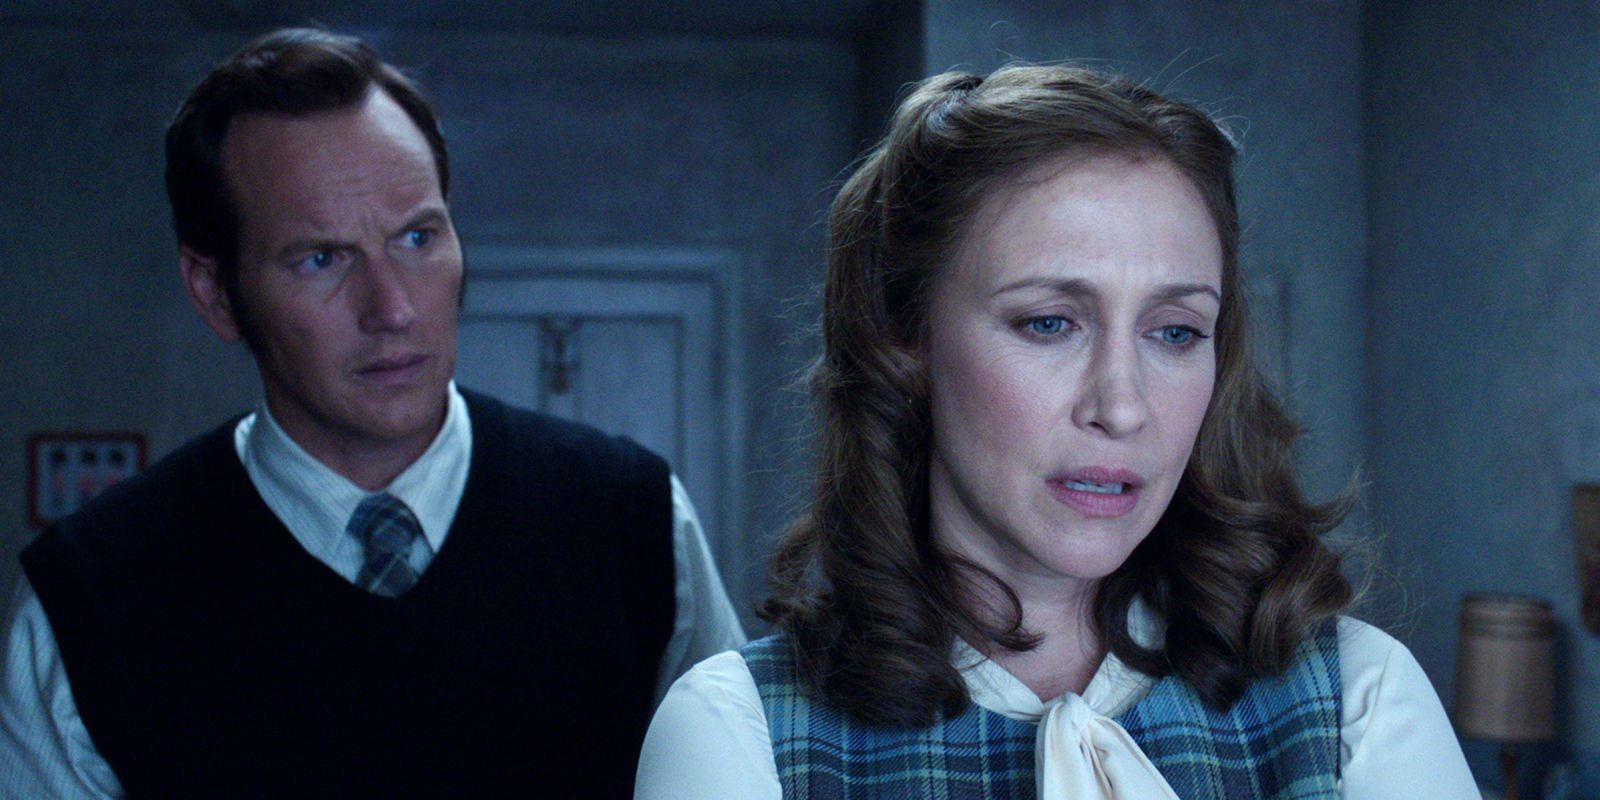 Here's when we can expect The Conjuring 3 to be released